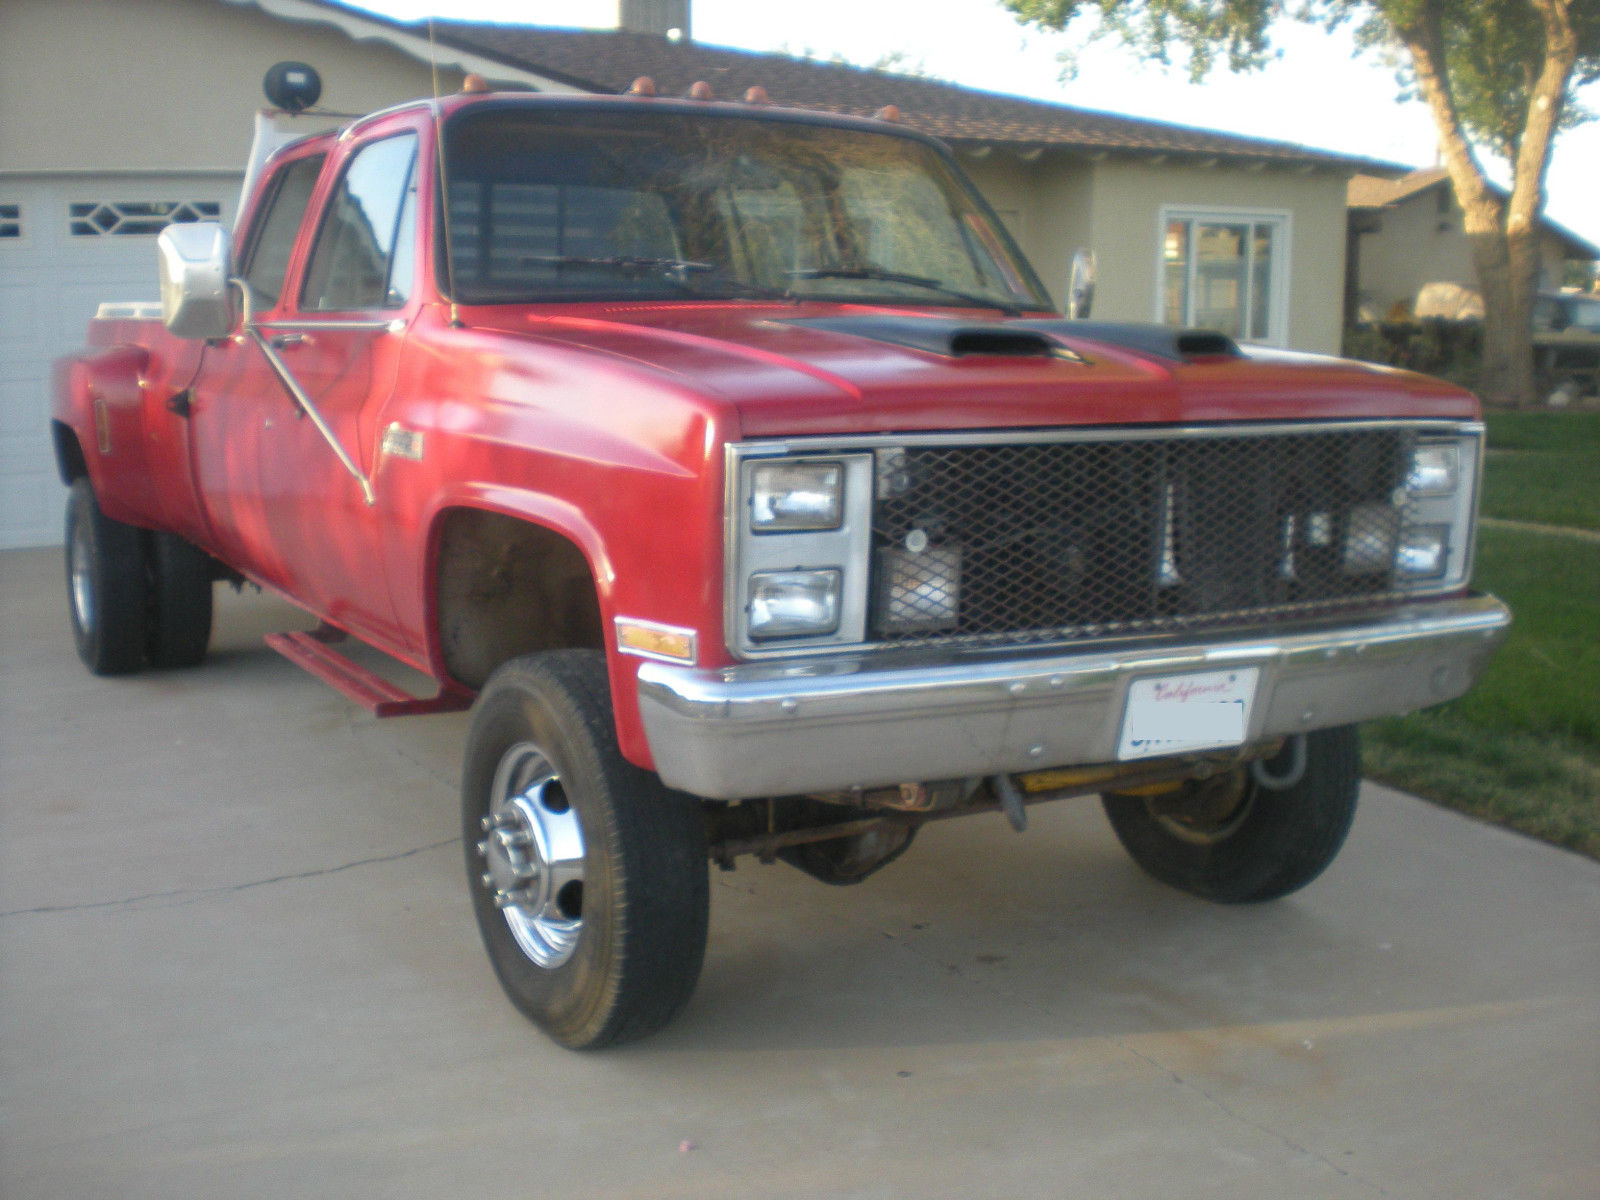 1988 crew cab dulley 4wd 1 ton sierra classic 3500 classic gmc sierra 3500 1988 for sale. Black Bedroom Furniture Sets. Home Design Ideas